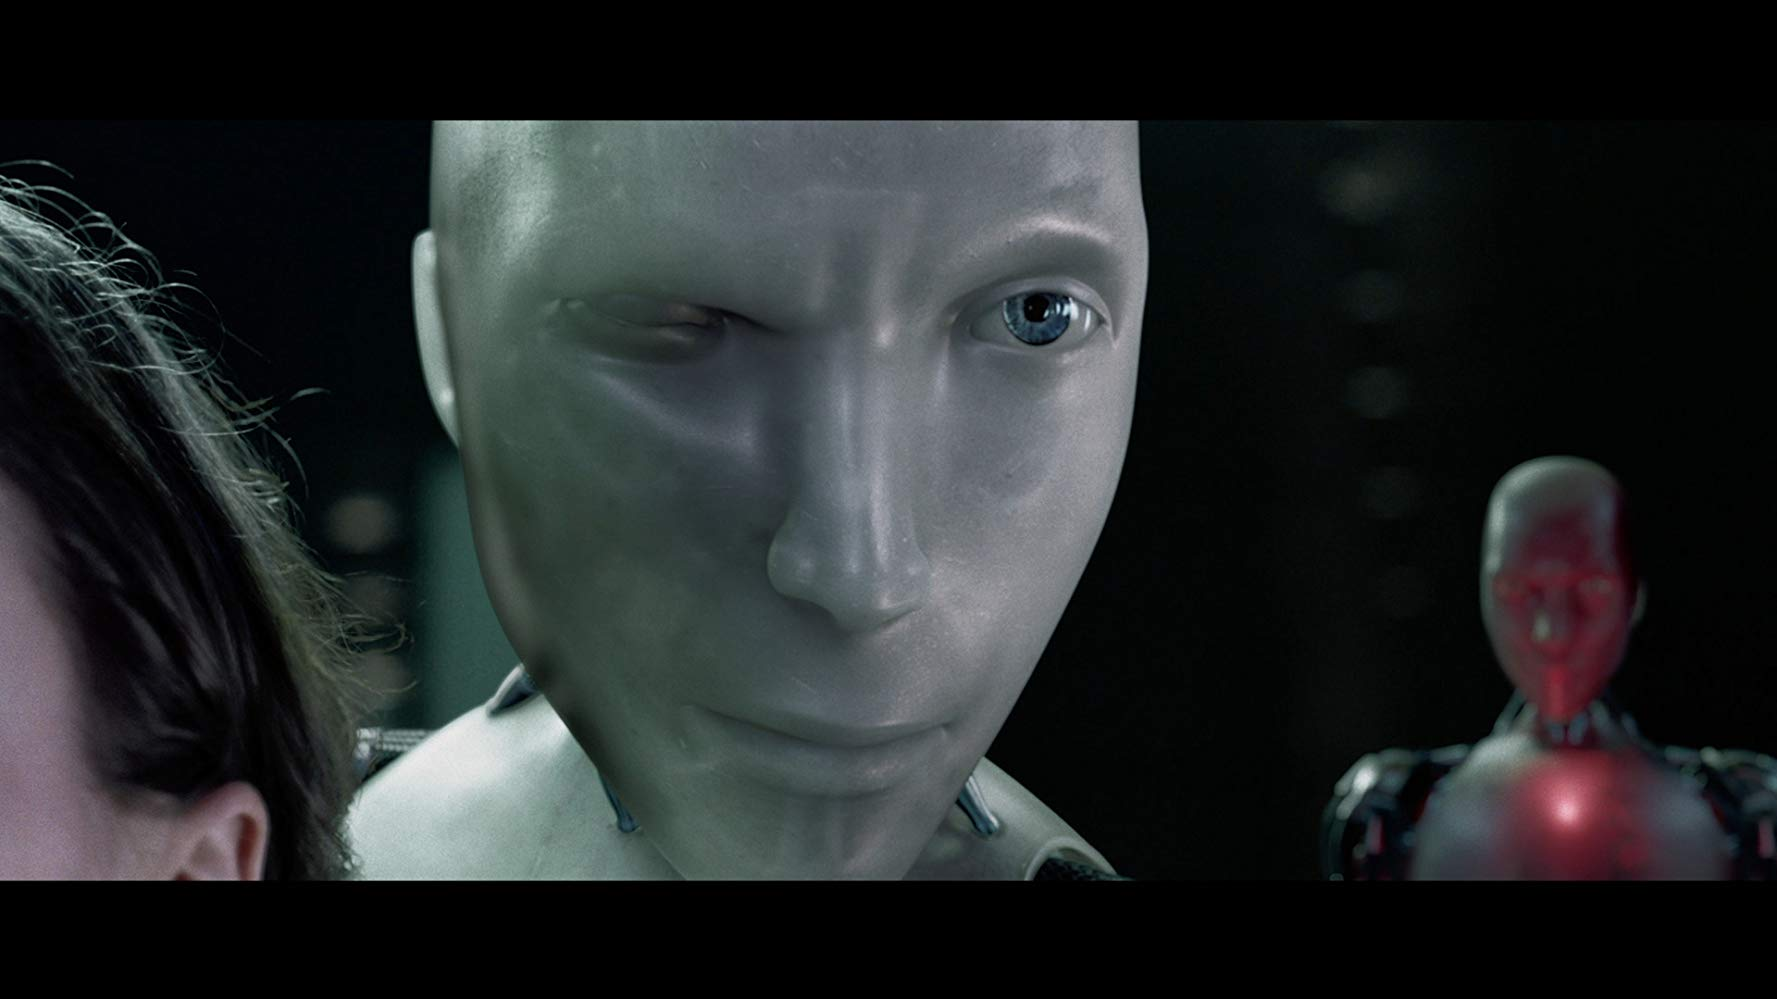 The 2014 sci-fi film 'I, Robot' was suggested by Isaac Asimov's short story collection of the same name.